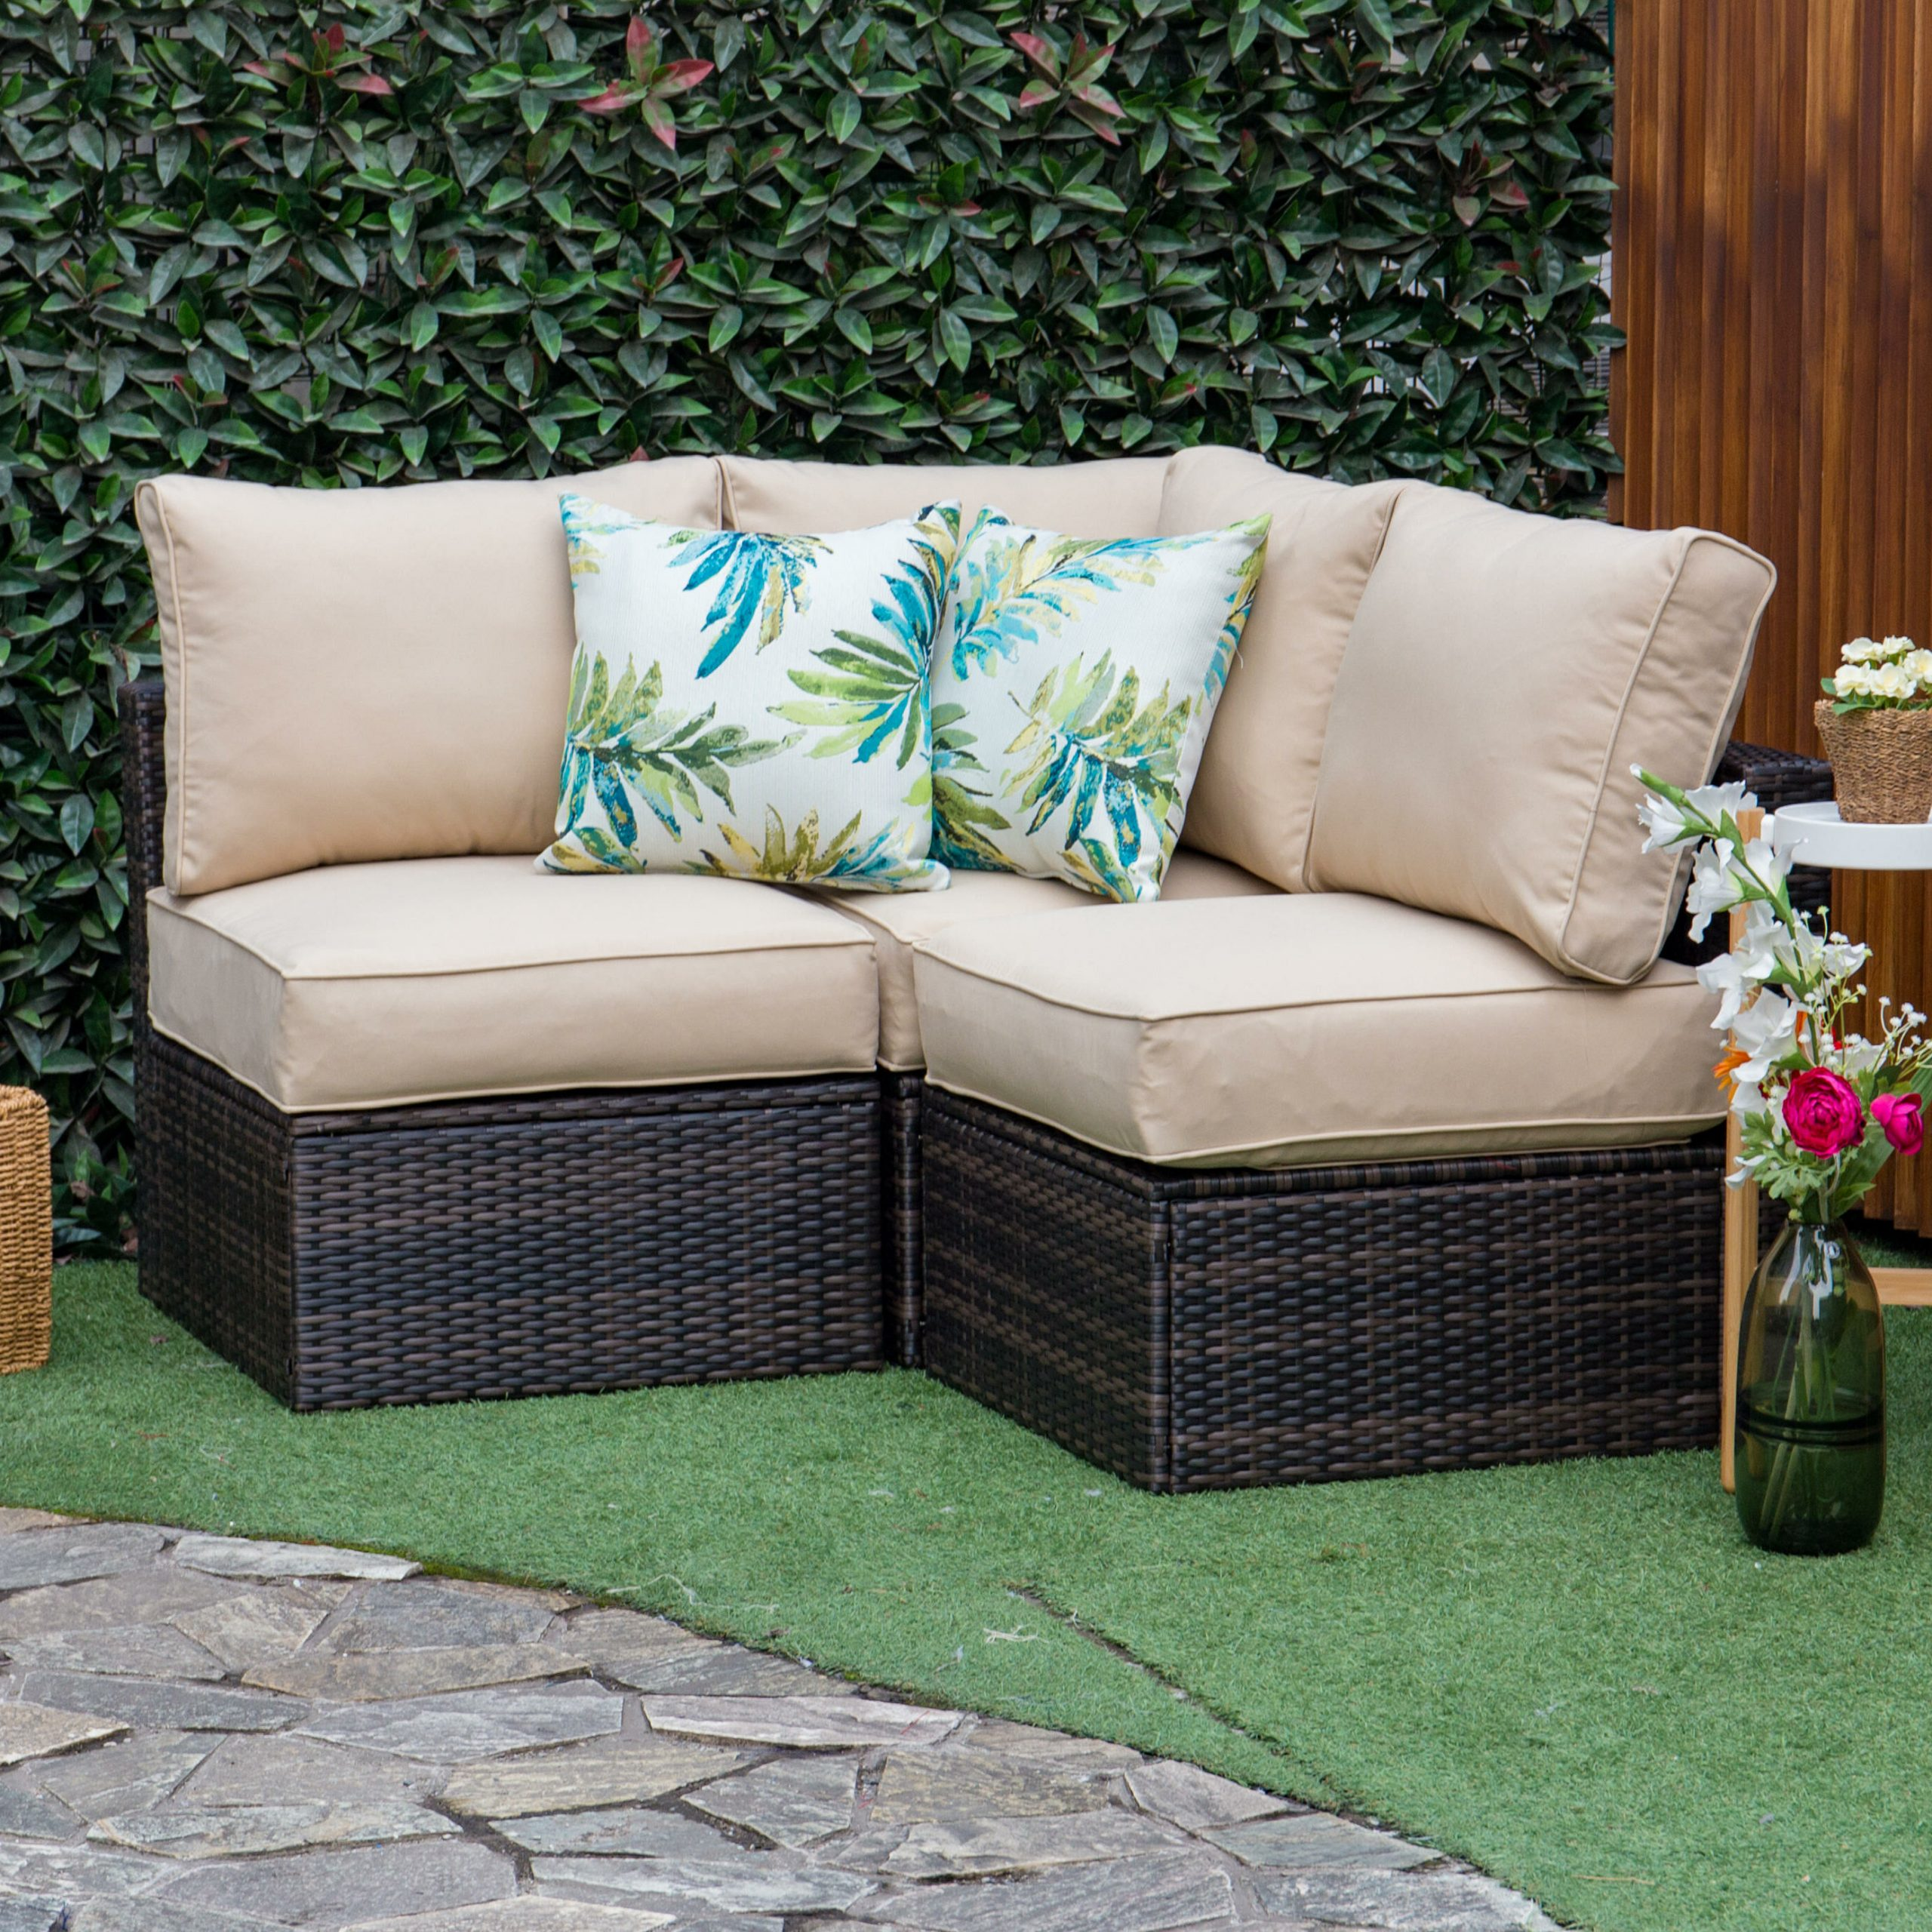 Boyce Outdoor Patio Sectionals With Cushions Inside Fashionable Boyce Outdoor Patio Sectional With Cushions (Gallery 1 of 25)